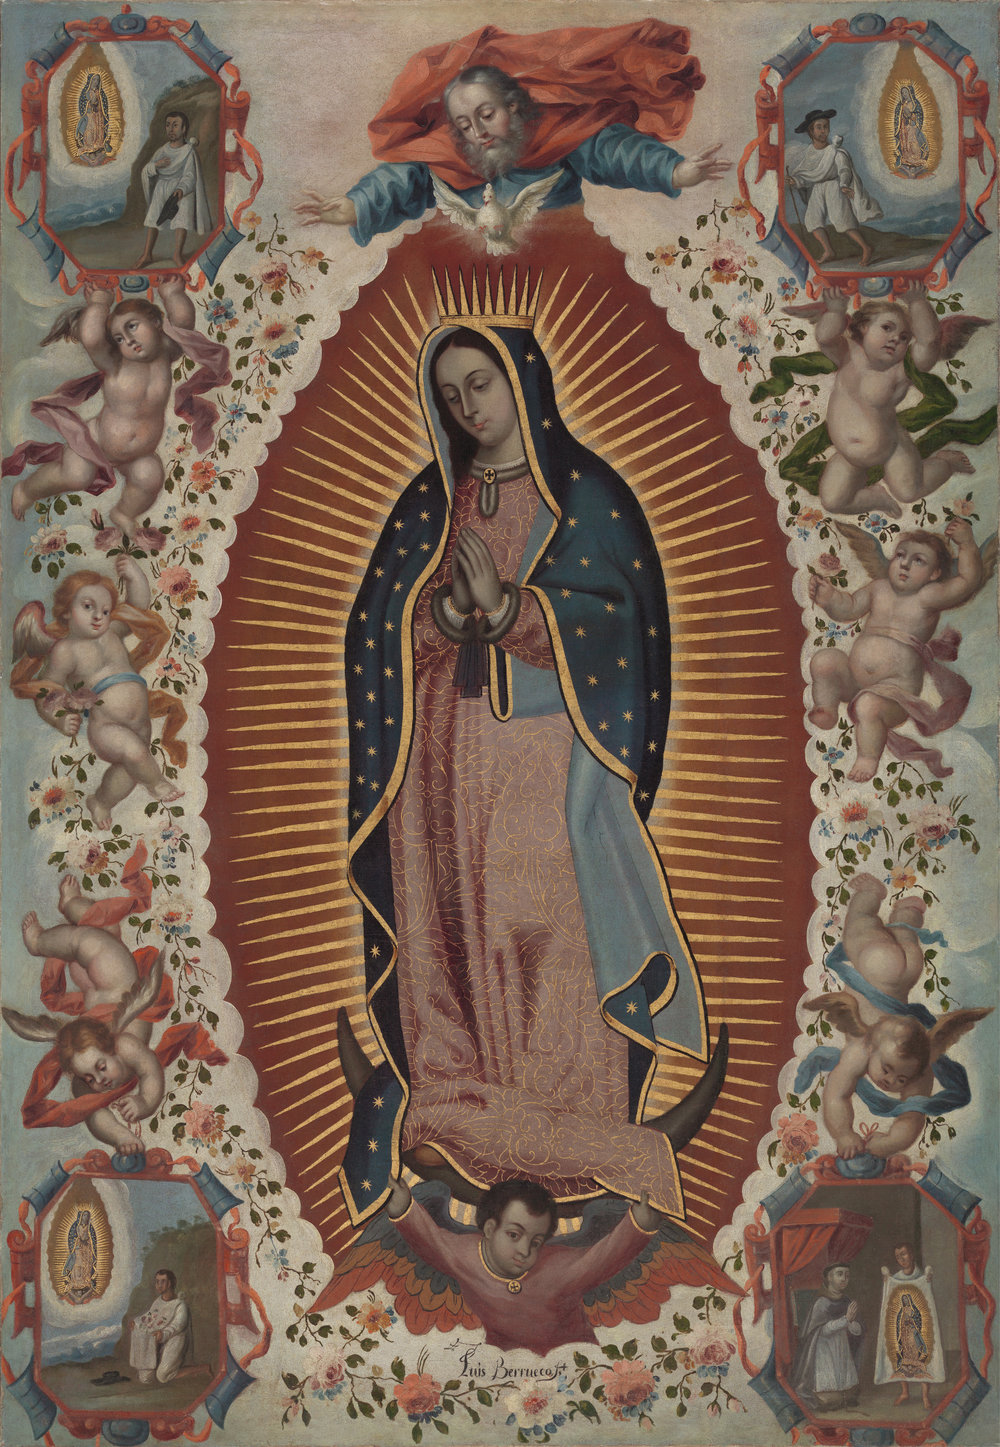 Luis Berrueco,   Virgin of Guadalupe (Virgen de Guadalupe),  mid 18th century  Oil on canvas, Virginia Museum of Fine Arts, Arthur and Margaret Glasgow Endowment  Image courtesy of VMFA